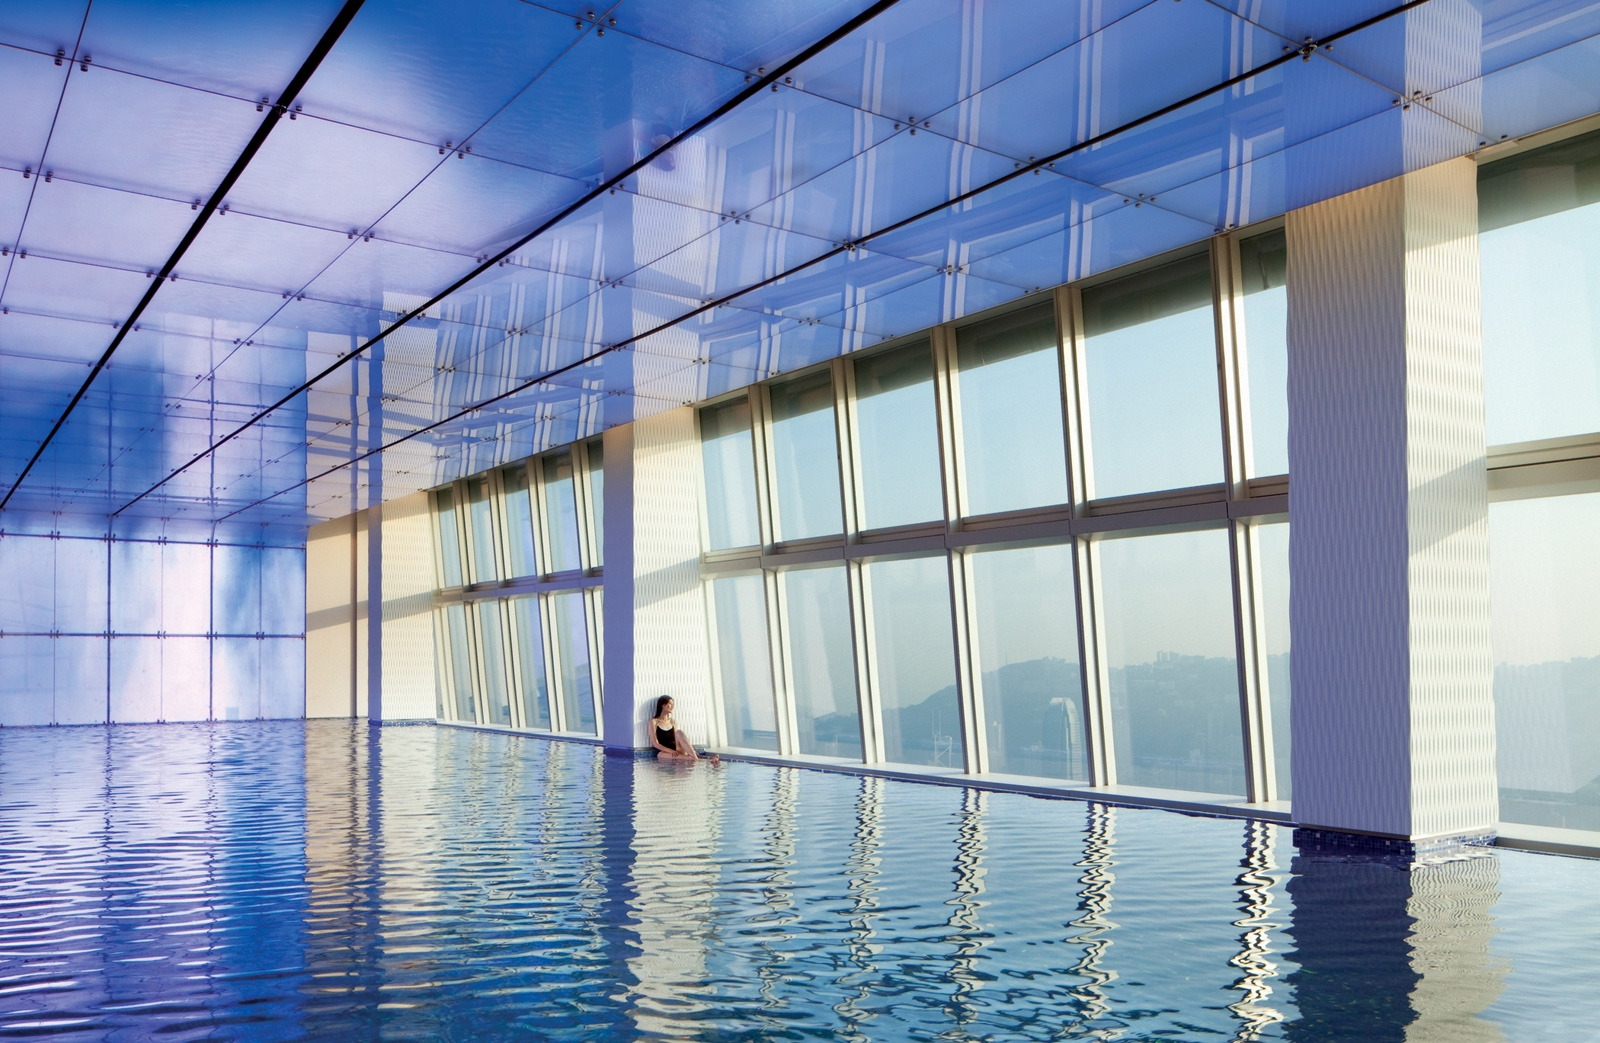 click to free download the wallpaper--Hong Kong Ritz-Carlton Hotel Swimming Pool 1600X1043 free wallpaper download